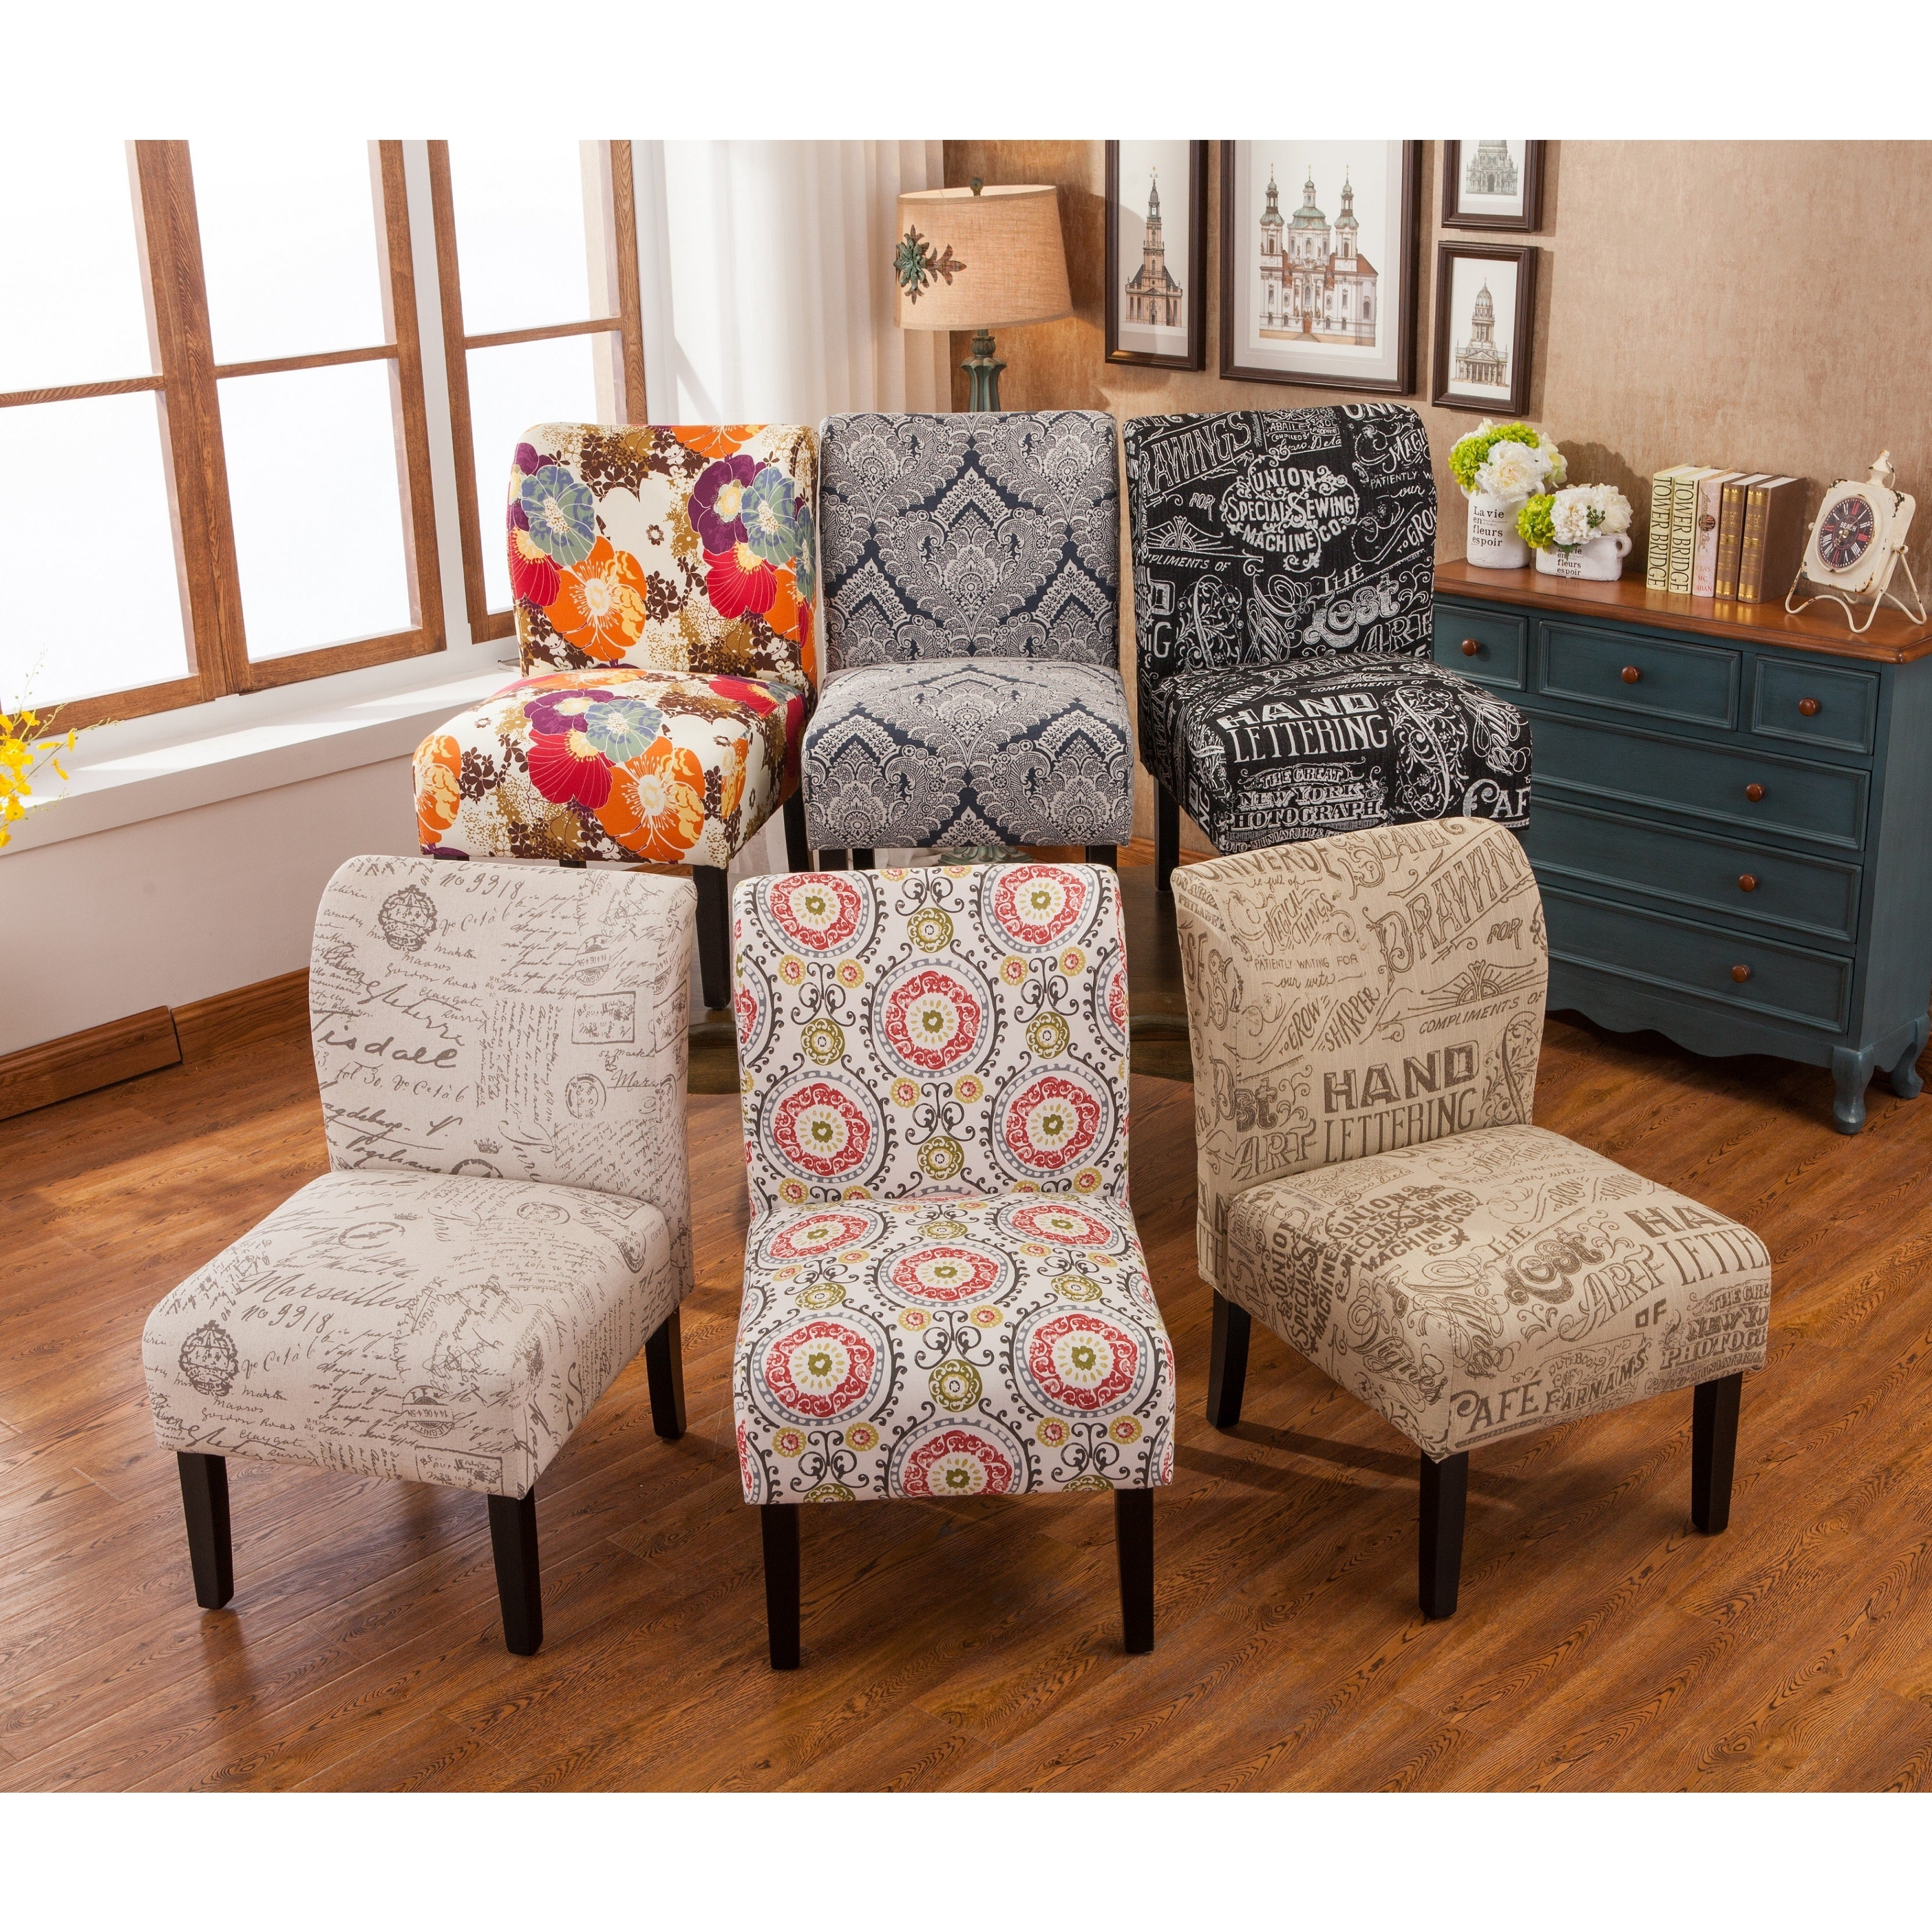 Paisley living room chairs